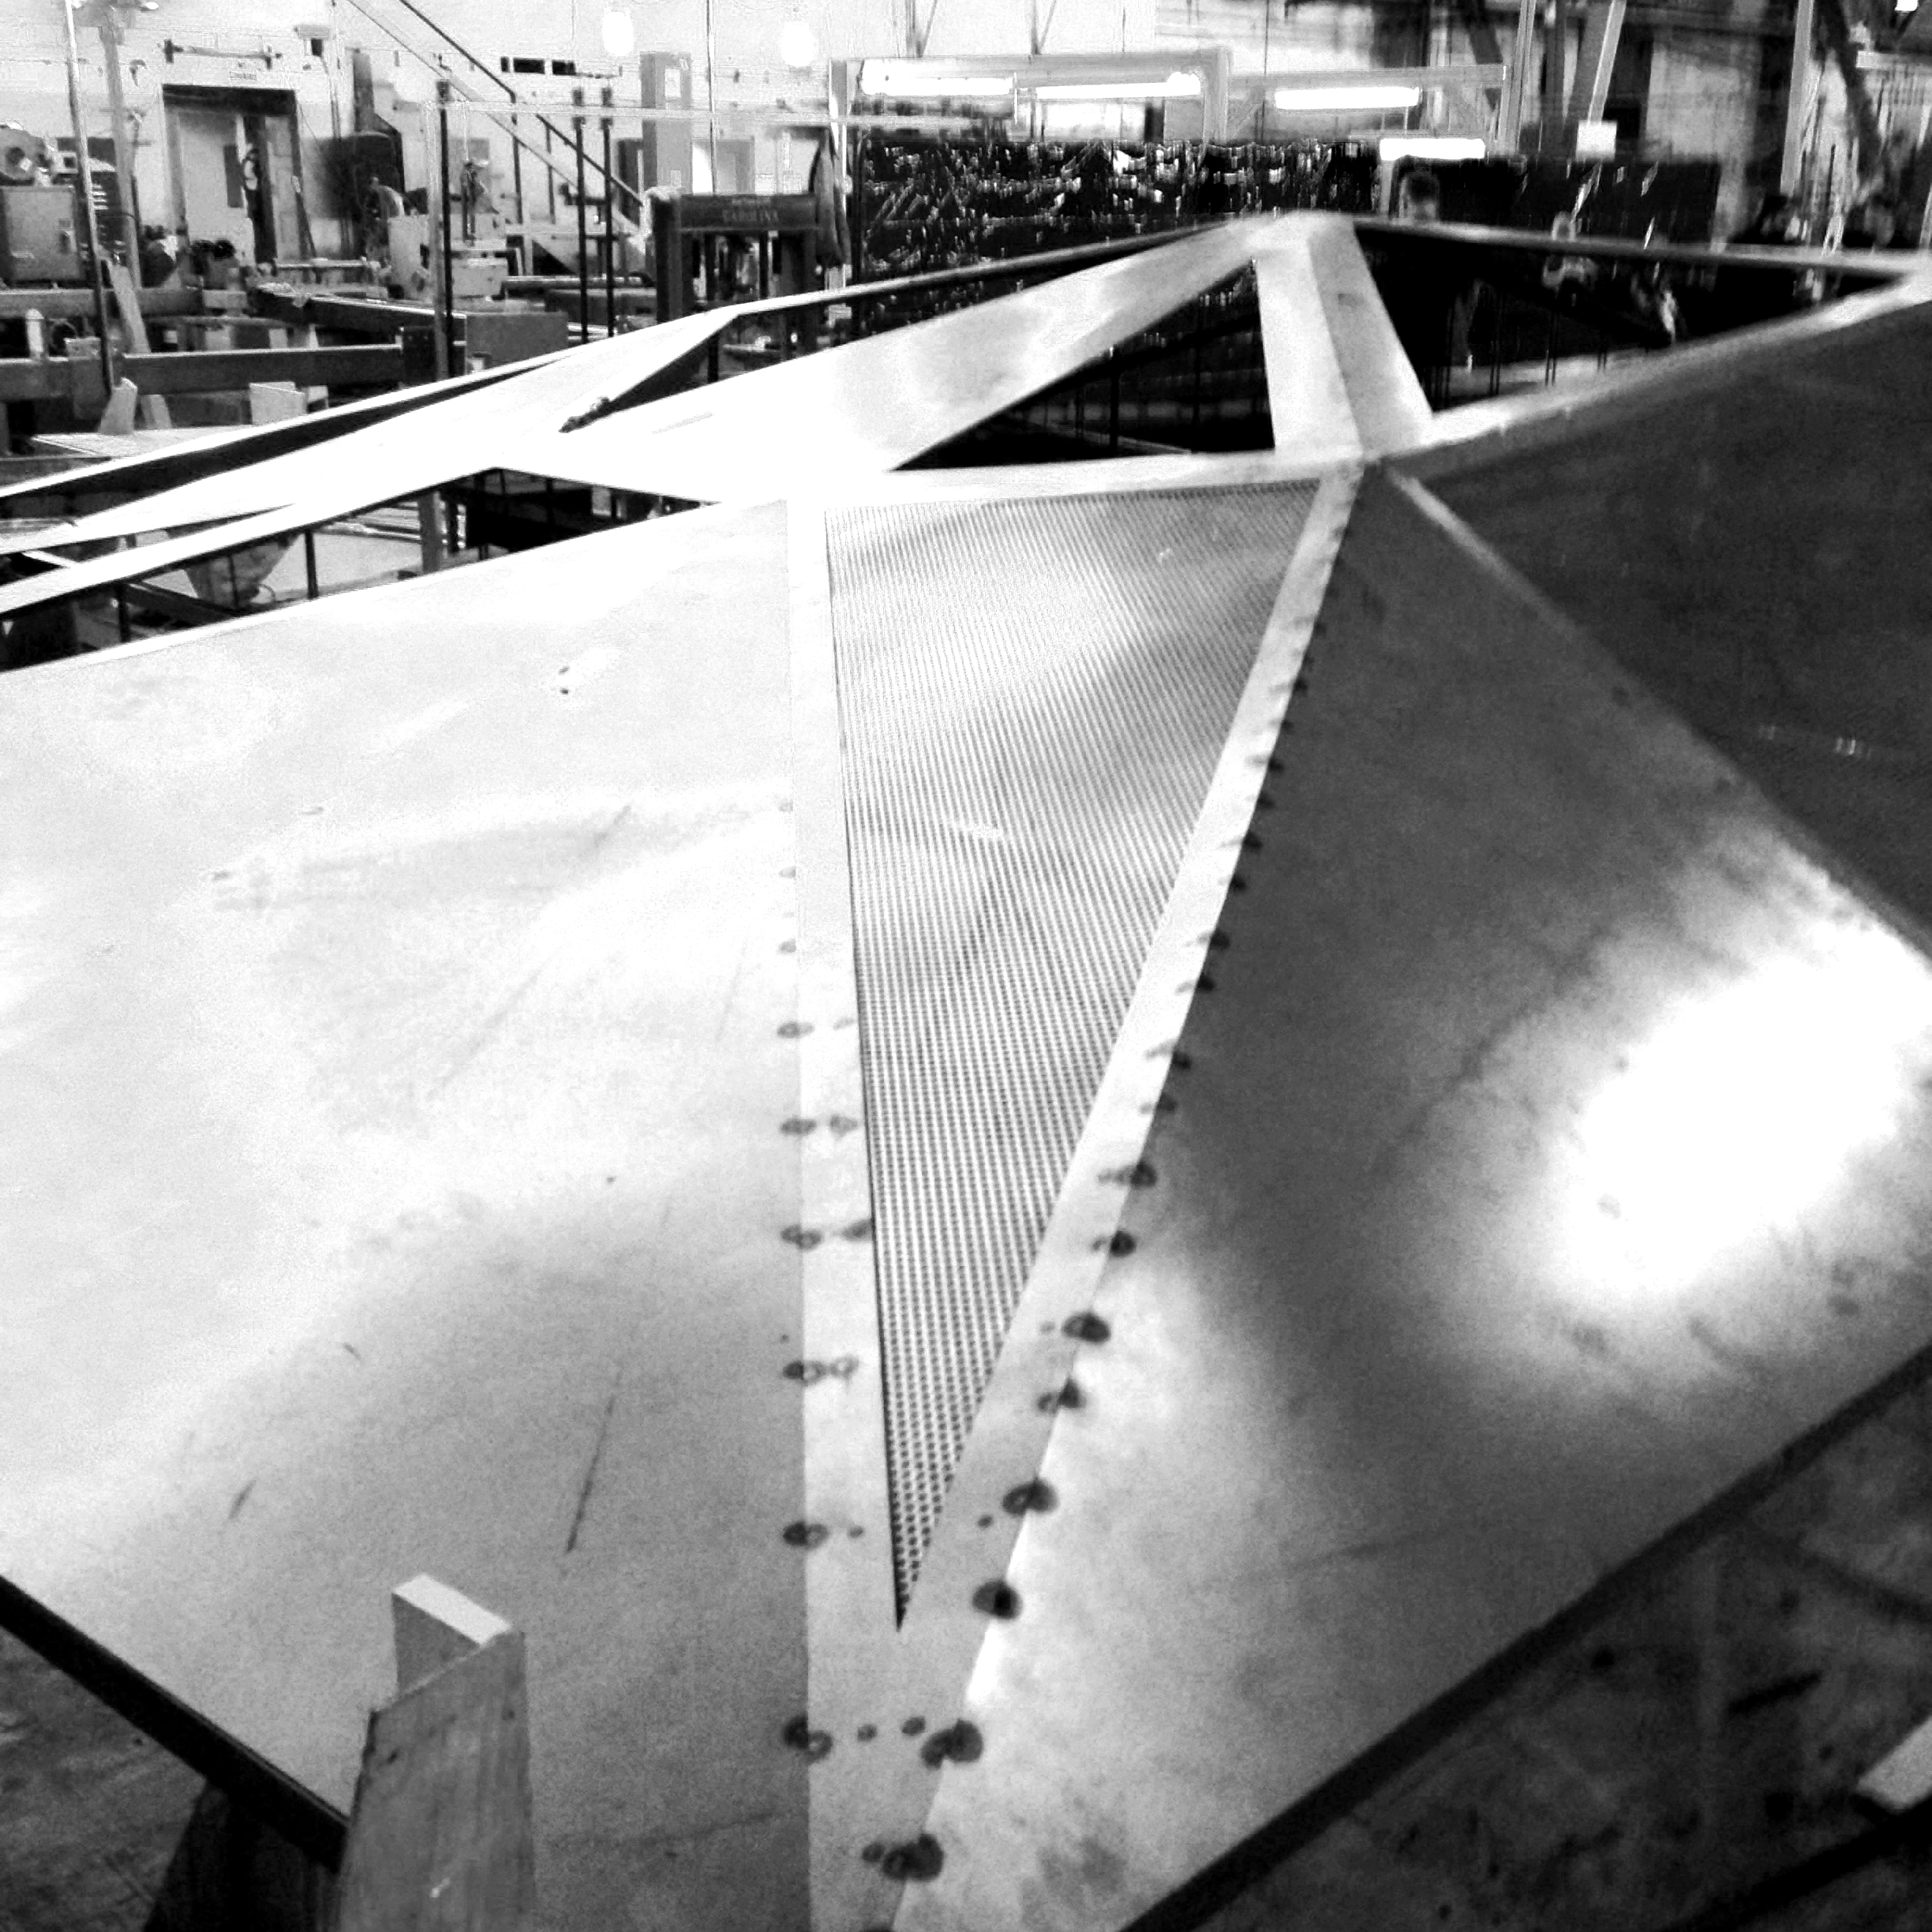 Welding the steel panels together.